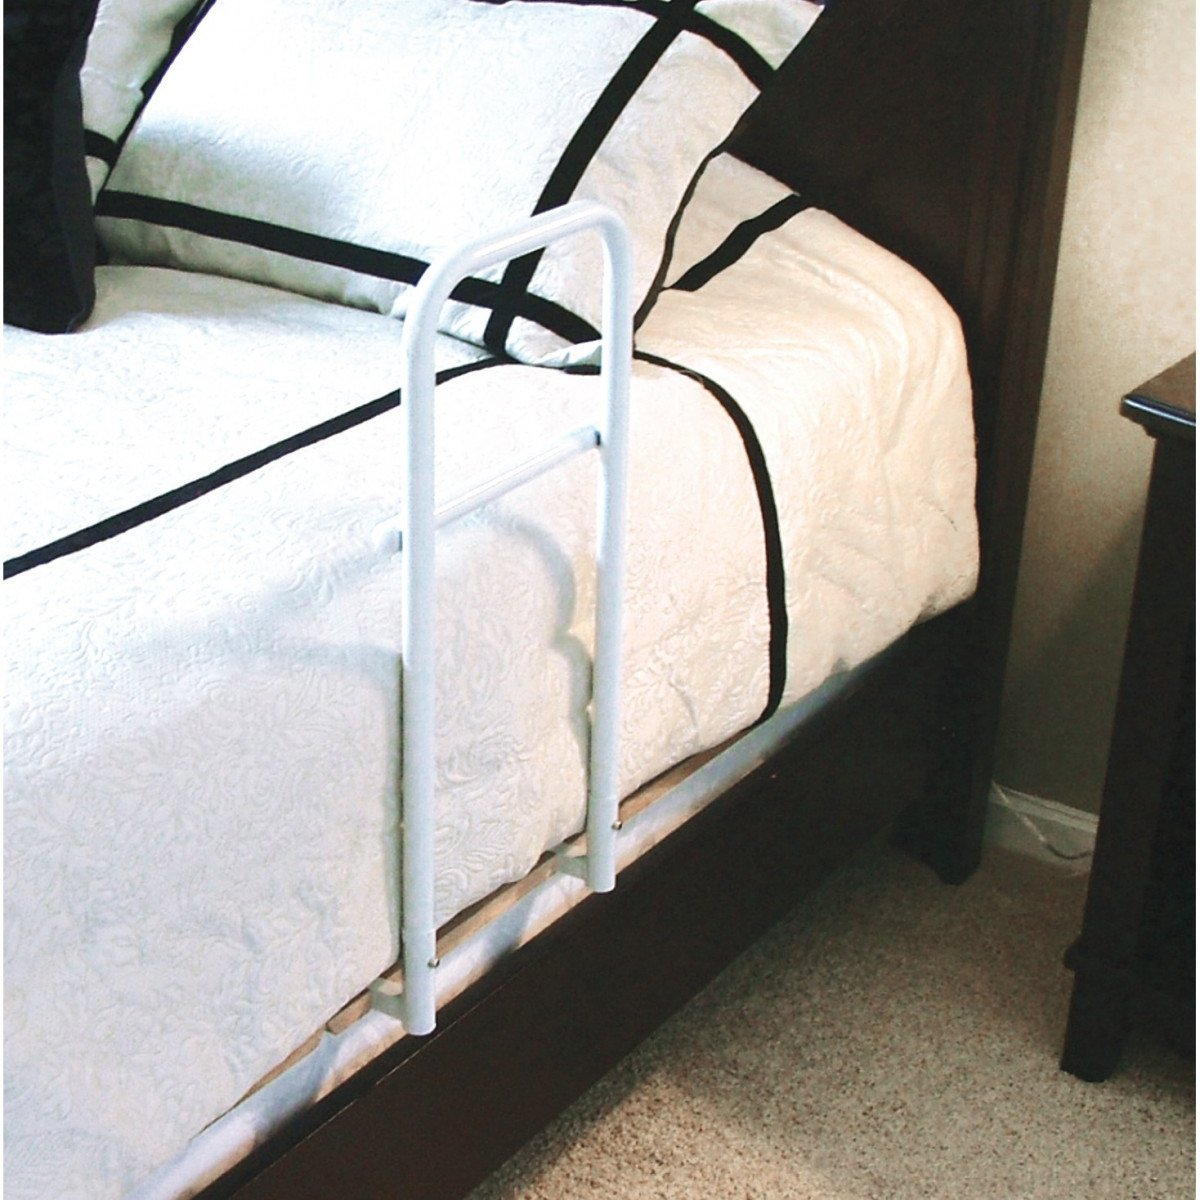 Home Bed Assist Rail Folding Bed Board Combo 15062